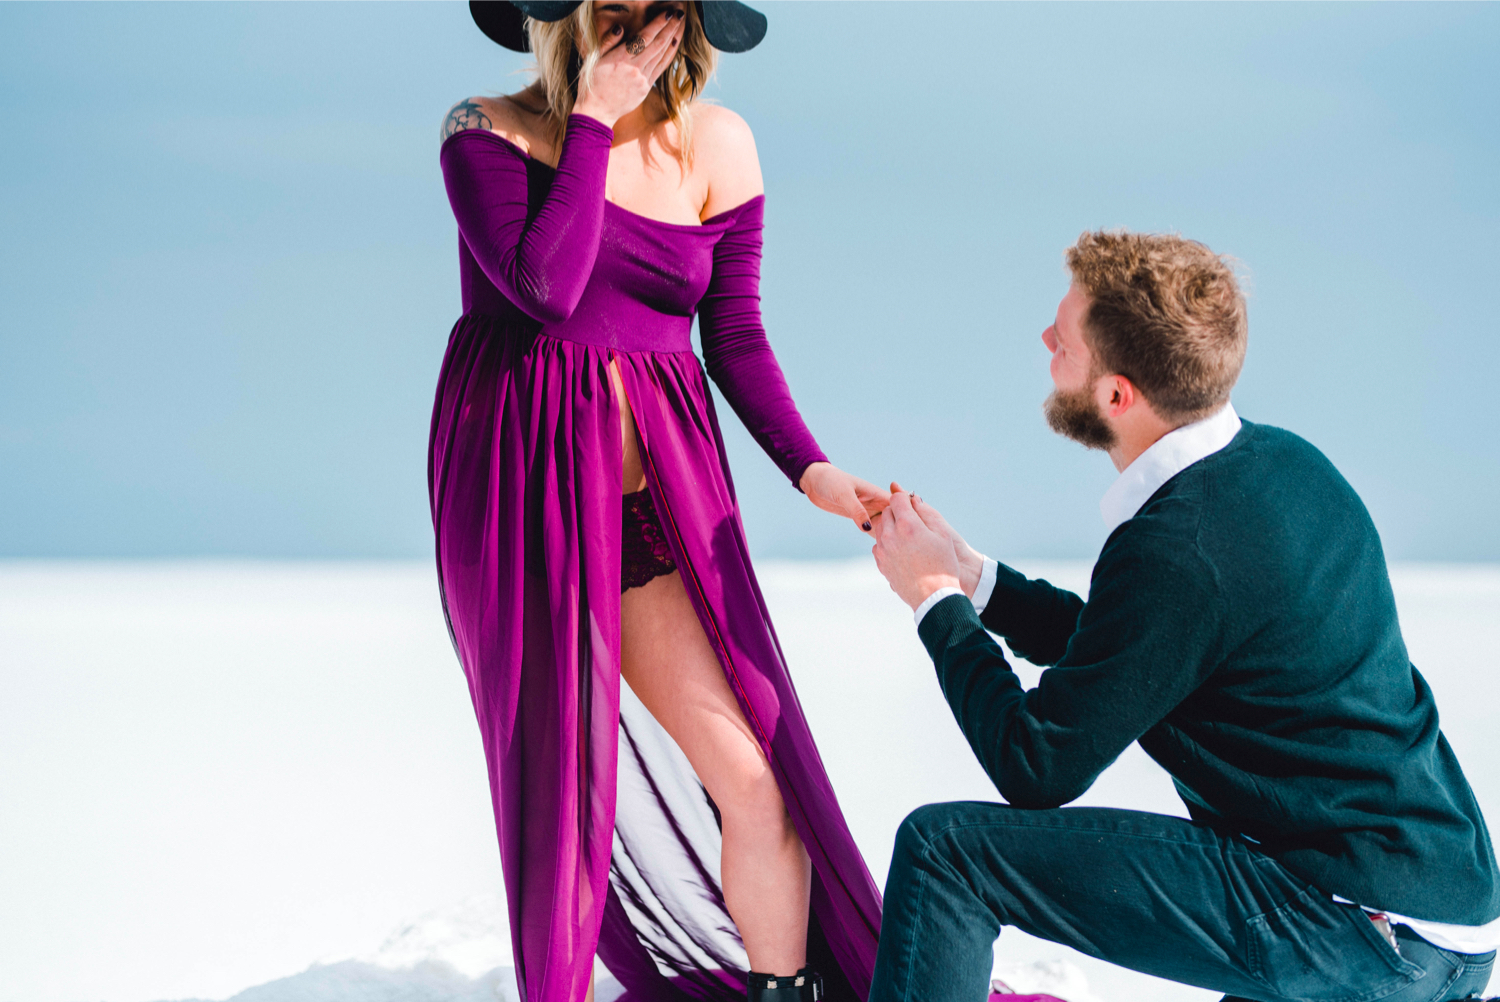 Image 5 of Maternity Shoot Turns into Surprise Marriage Proposal